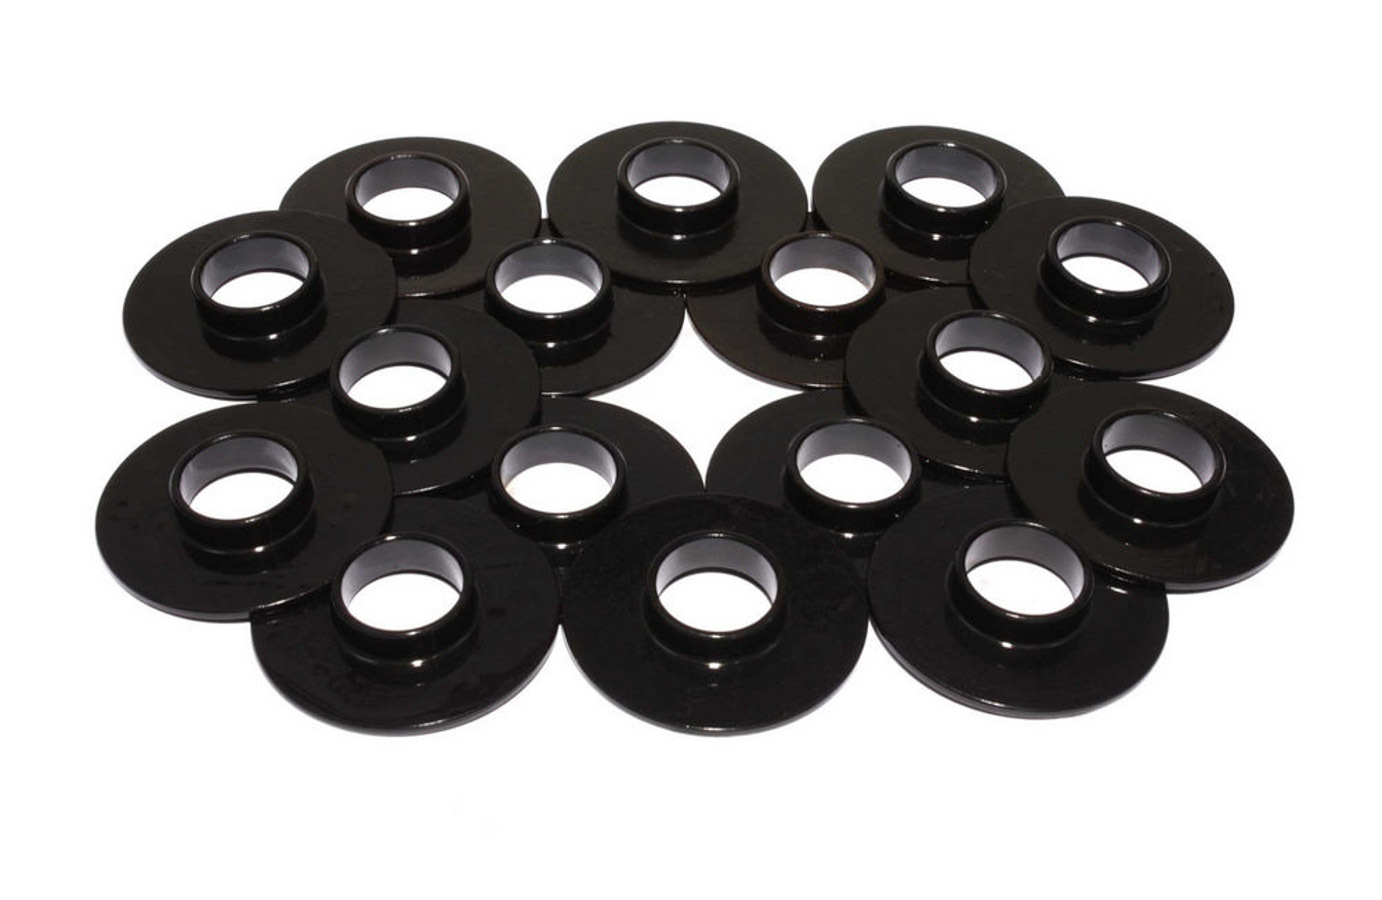 Comp Cams 4770-16 Valve Spring Locator, Inside, 0.060 in Thick, 1.500 in OD, 0.585 in ID, 0.690 in Spring ID, Steel, Set of 16